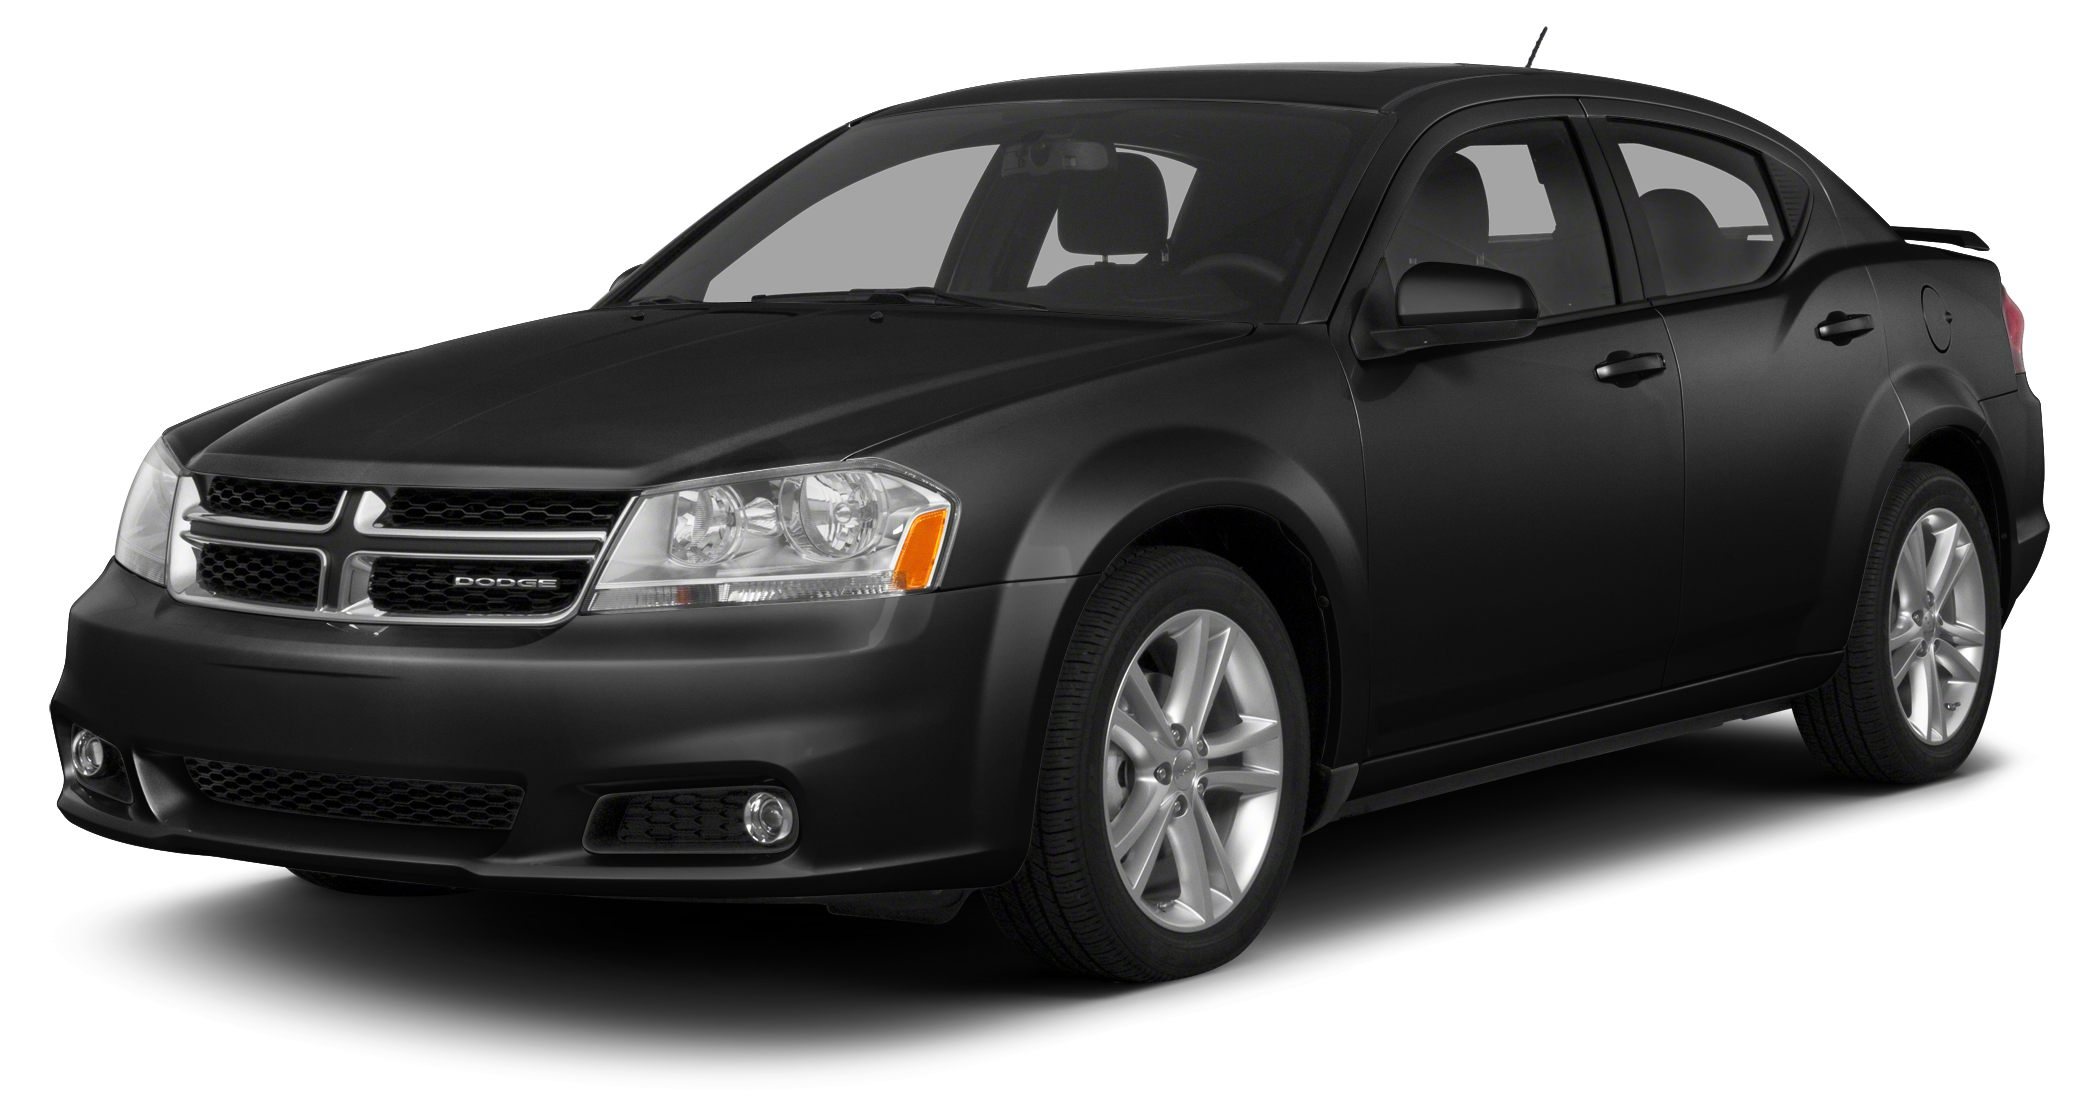 2013 Dodge Avenger SE Power group auto transmission Ac Safety equipment includes ABS Traction cont